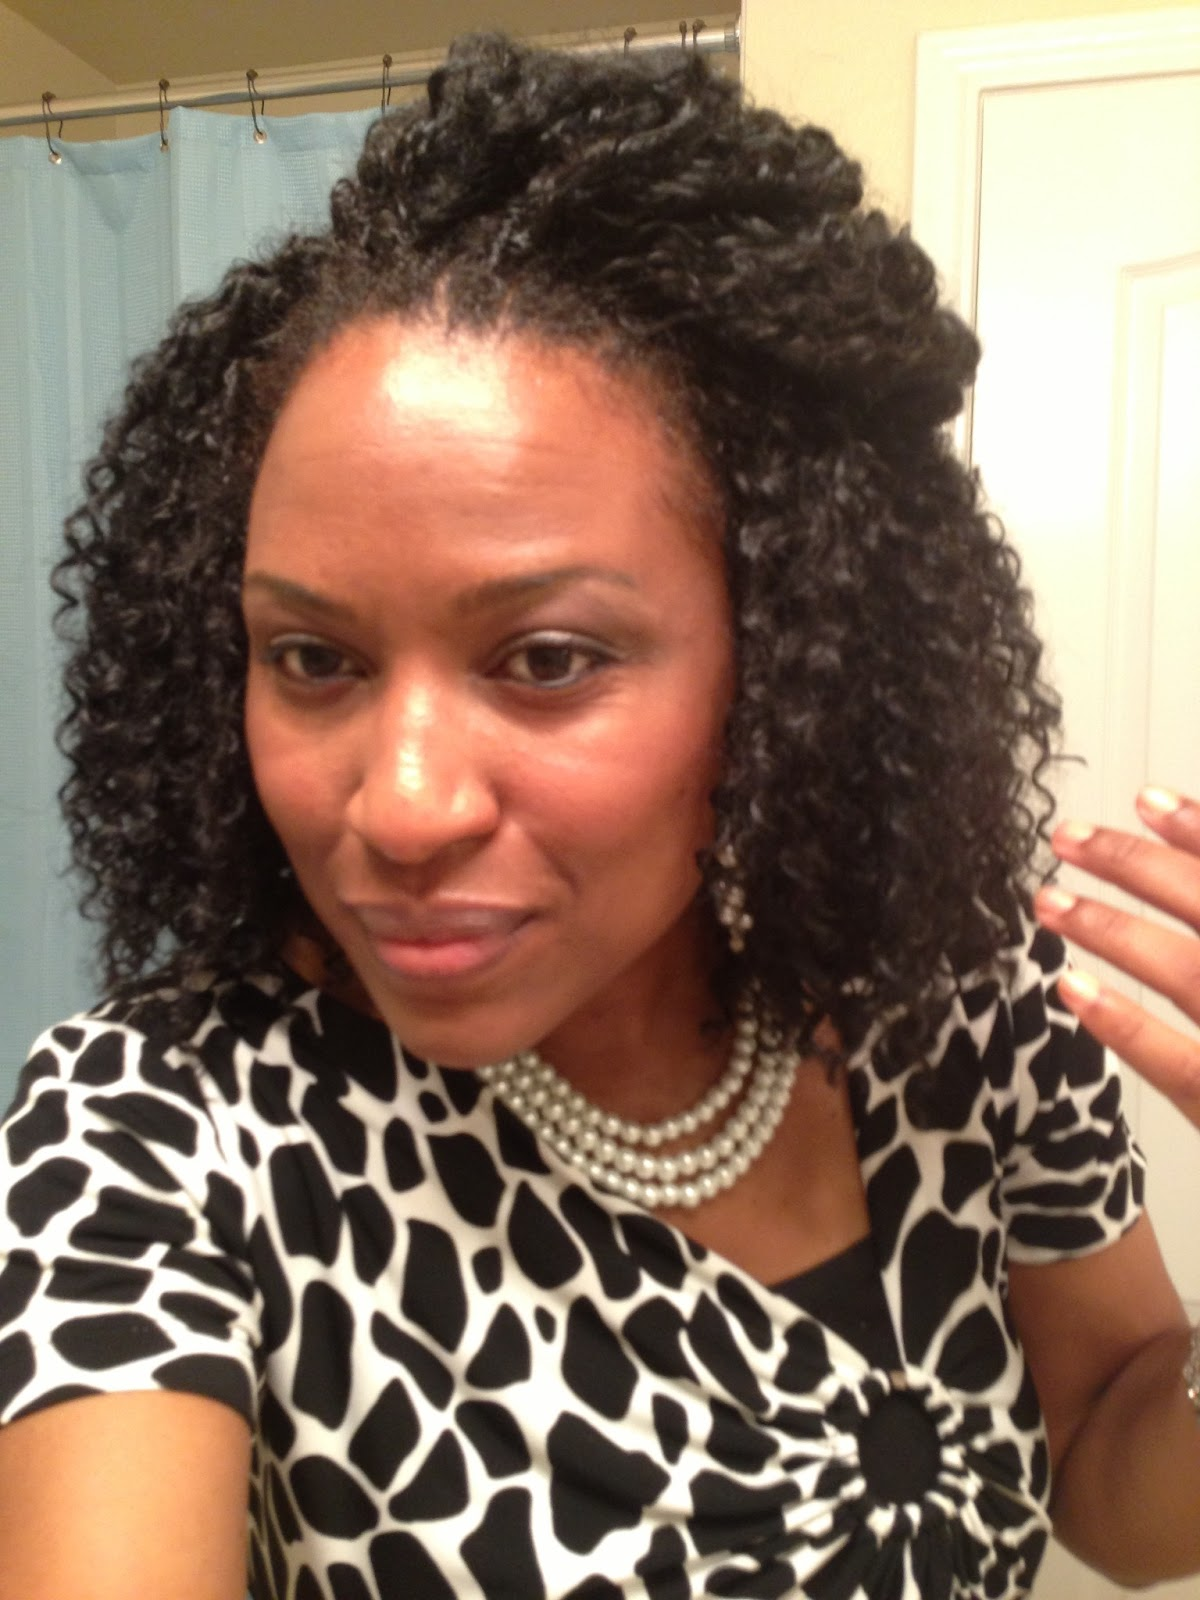 Crochet Braids Pics : ... HAIR: Get Maximum Wear out of your Crochet Braids:My 8 week Update